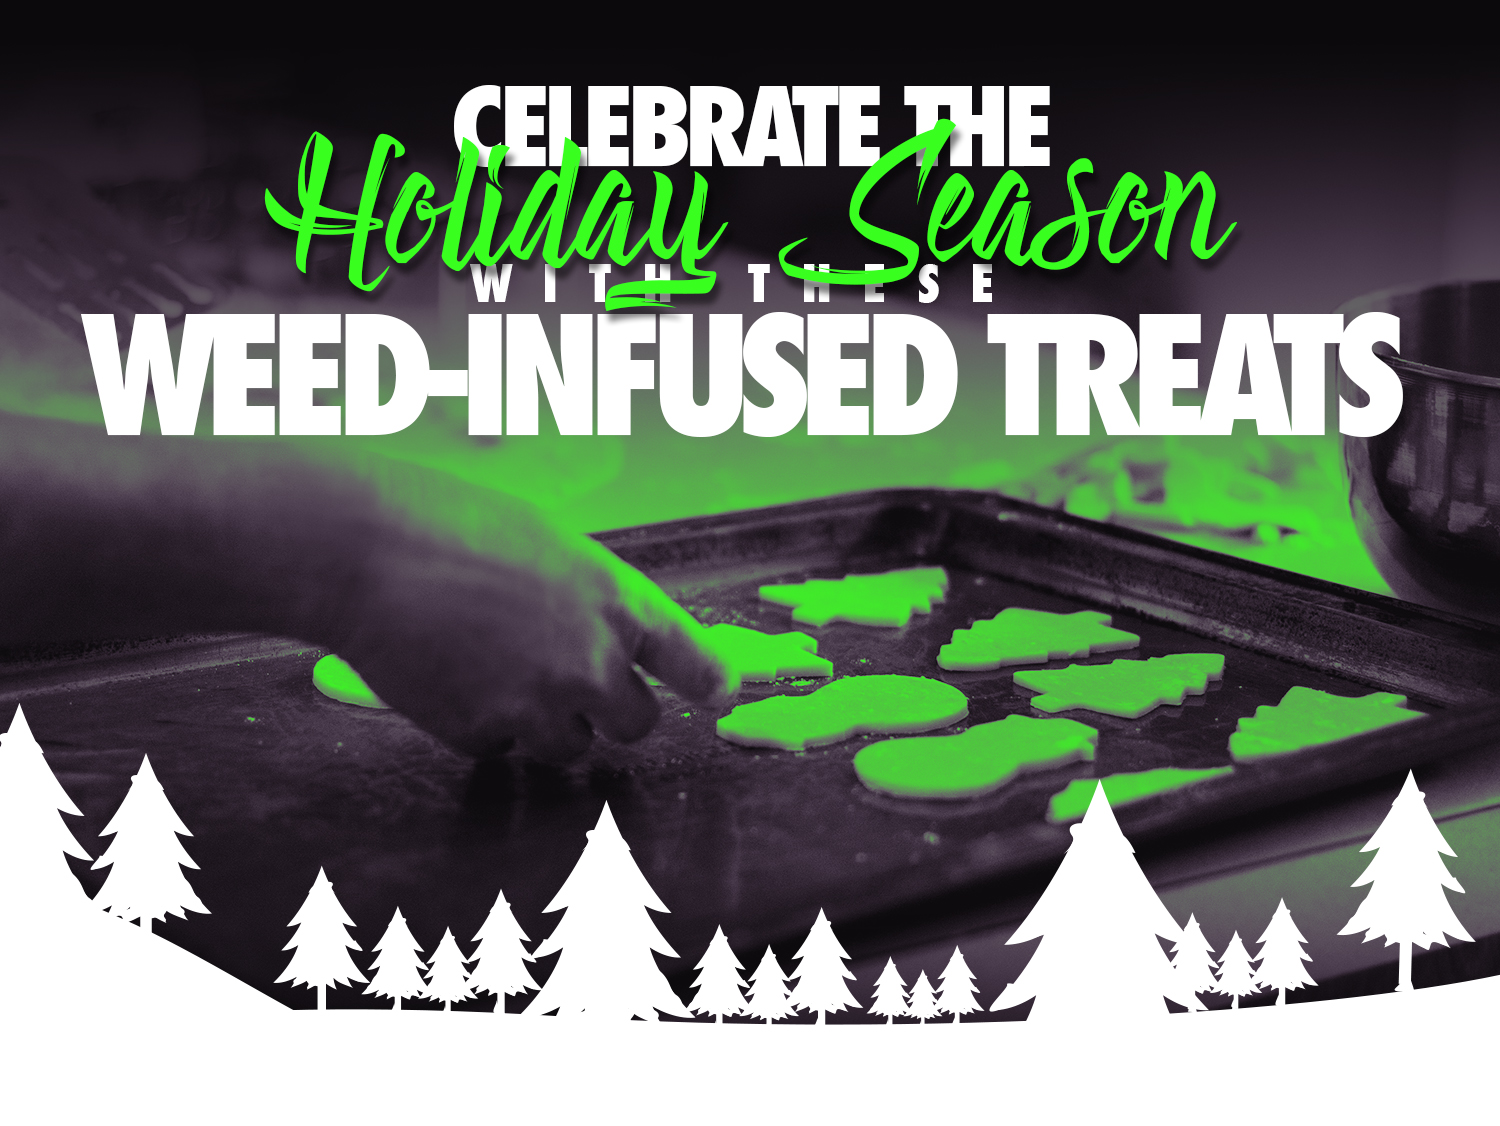 Celebrate the Holiday Season With These Weed-Infused Treats